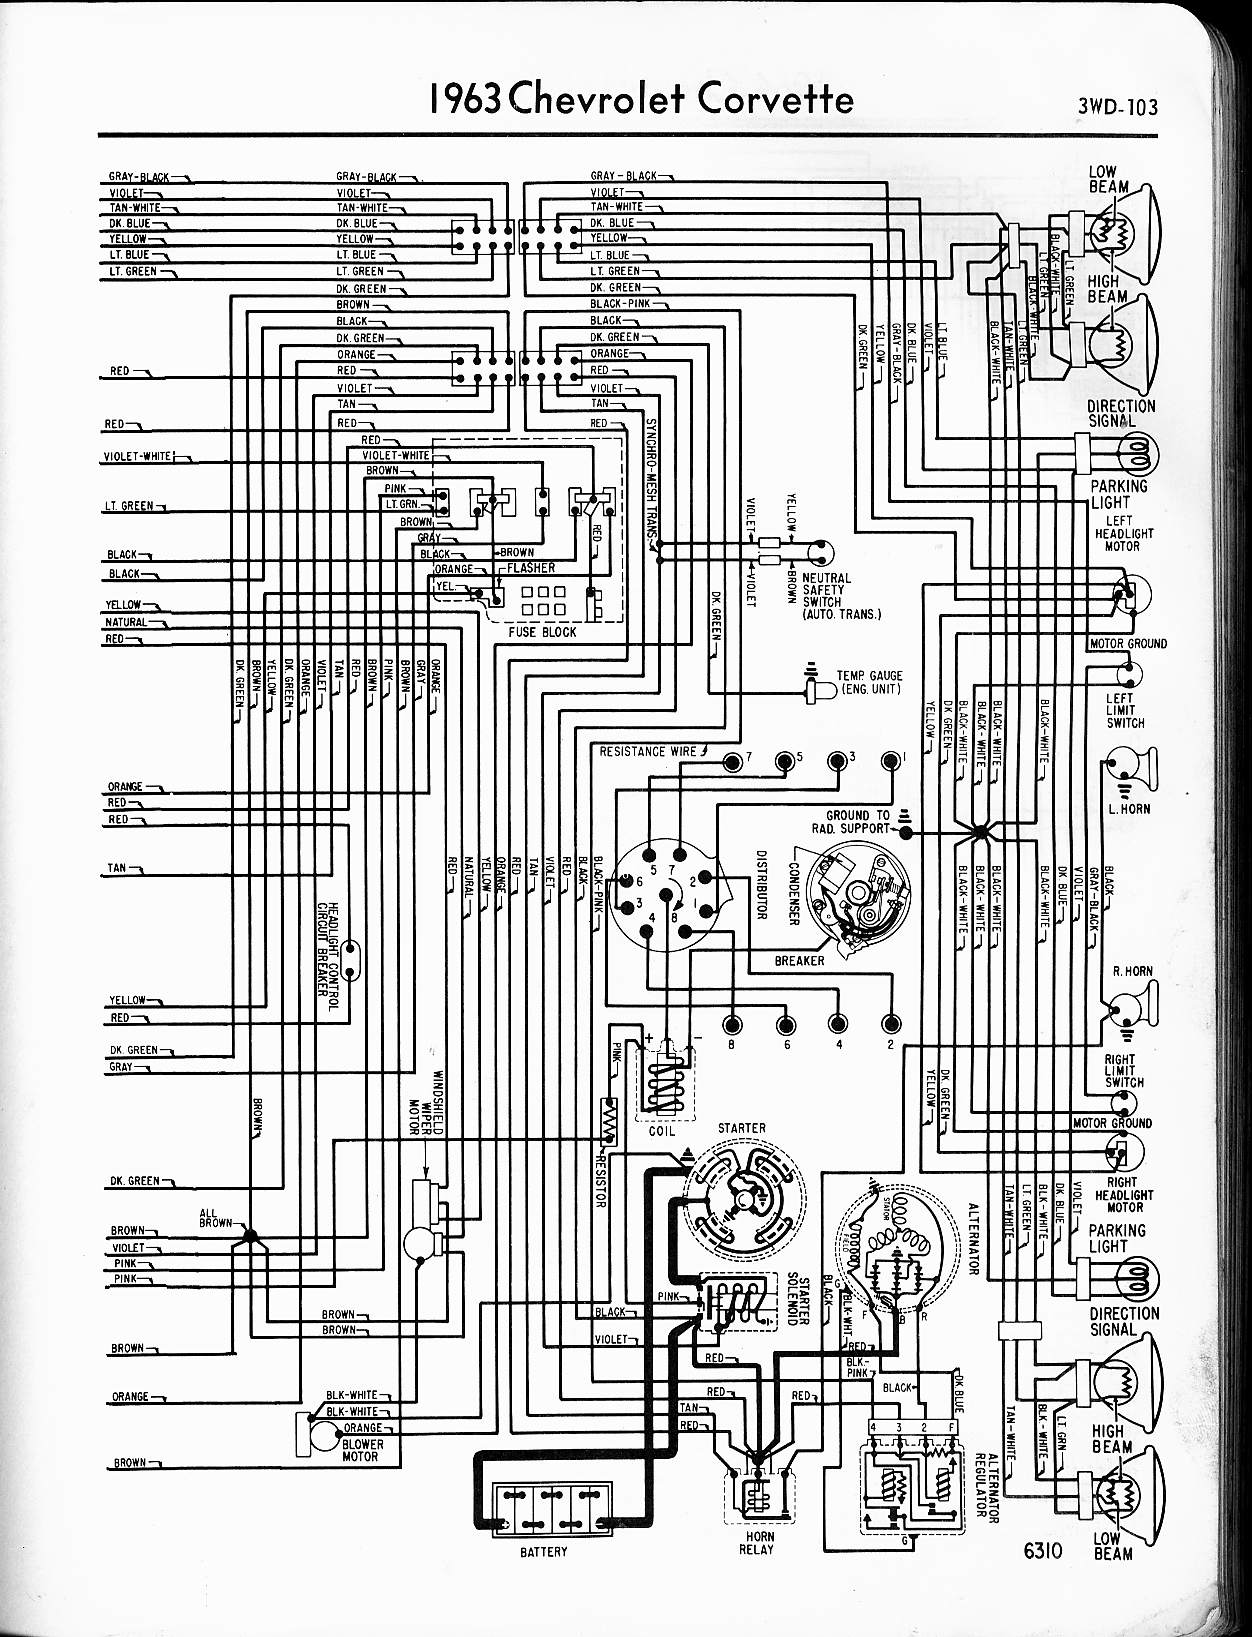 1979 Corvette Wiring Harness Diagram Library 1967 Camaro Horn 57 65 Chevy Diagrams Rh Oldcarmanualproject Com 1965